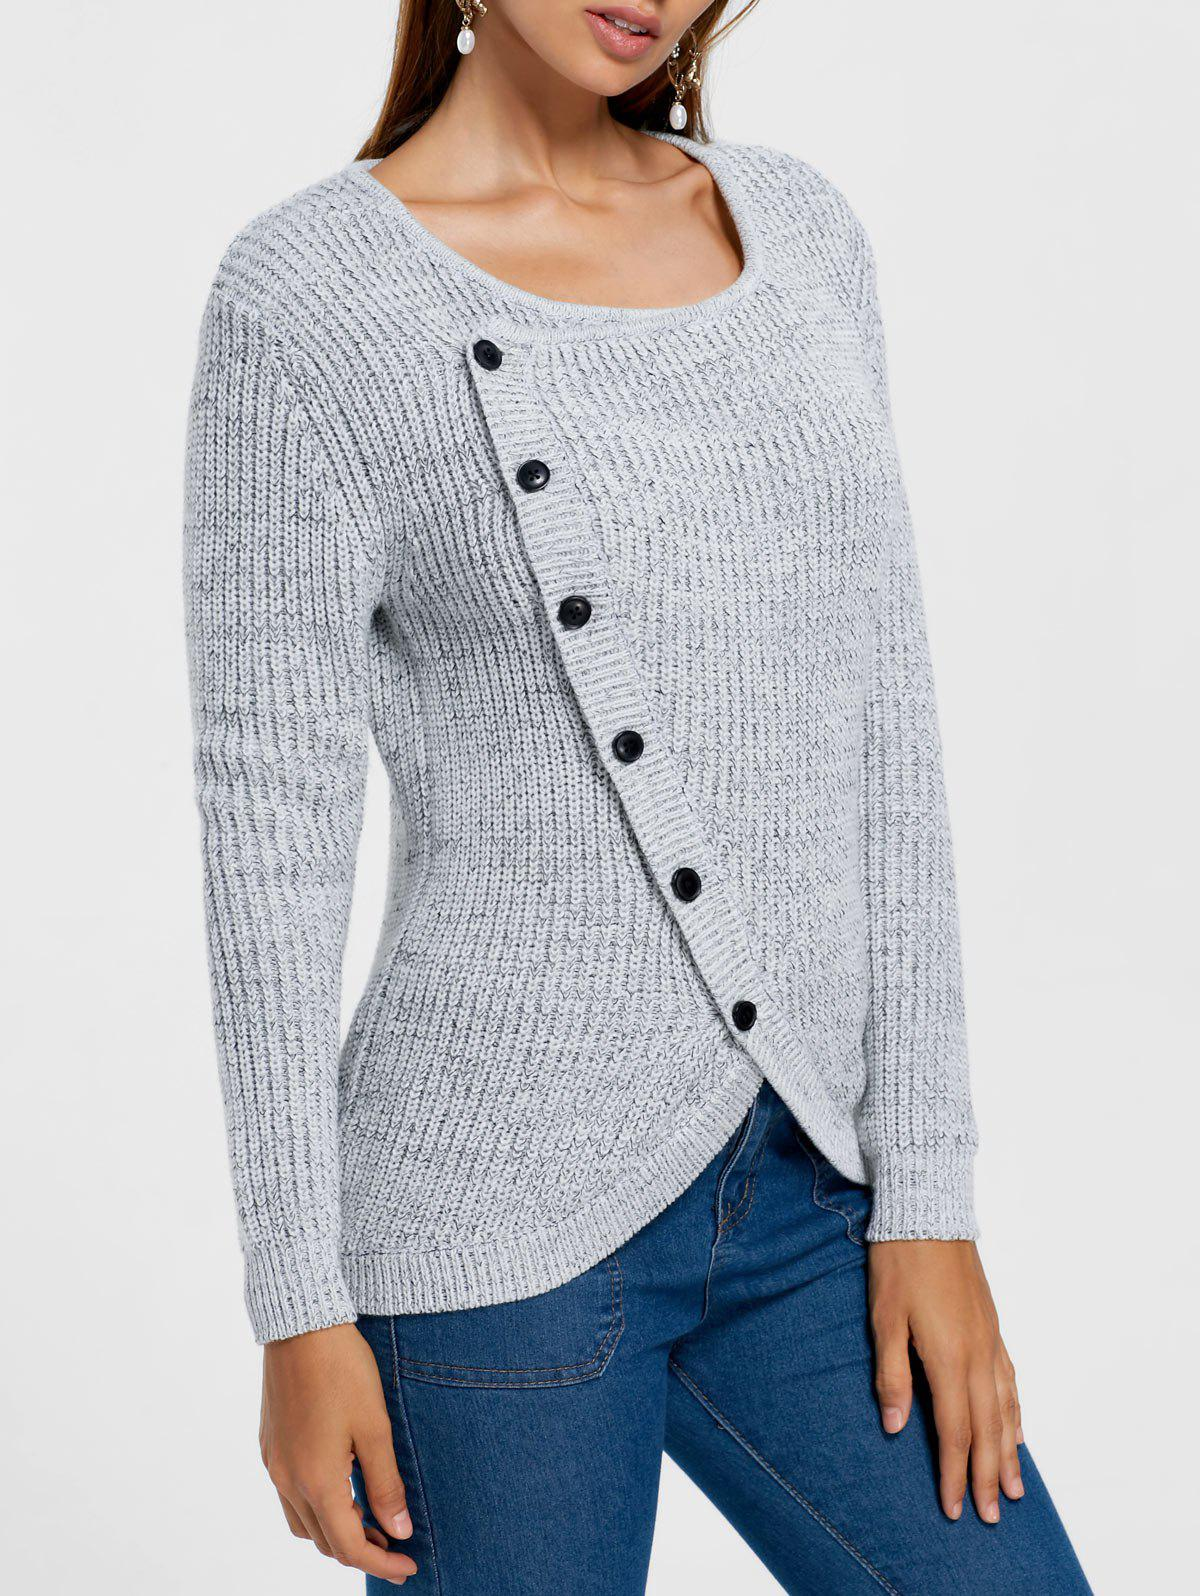 Single Breasted Overlap Formfitting SweaterWOMEN<br><br>Size: M; Color: GRAY; Type: Pullovers; Material: Acrylic; Sleeve Length: Full; Collar: Scoop Neck; Style: Casual; Pattern Type: Solid; Season: Fall,Spring,Winter; Weight: 0.4700kg; Package Contents: 1 x Sweater;